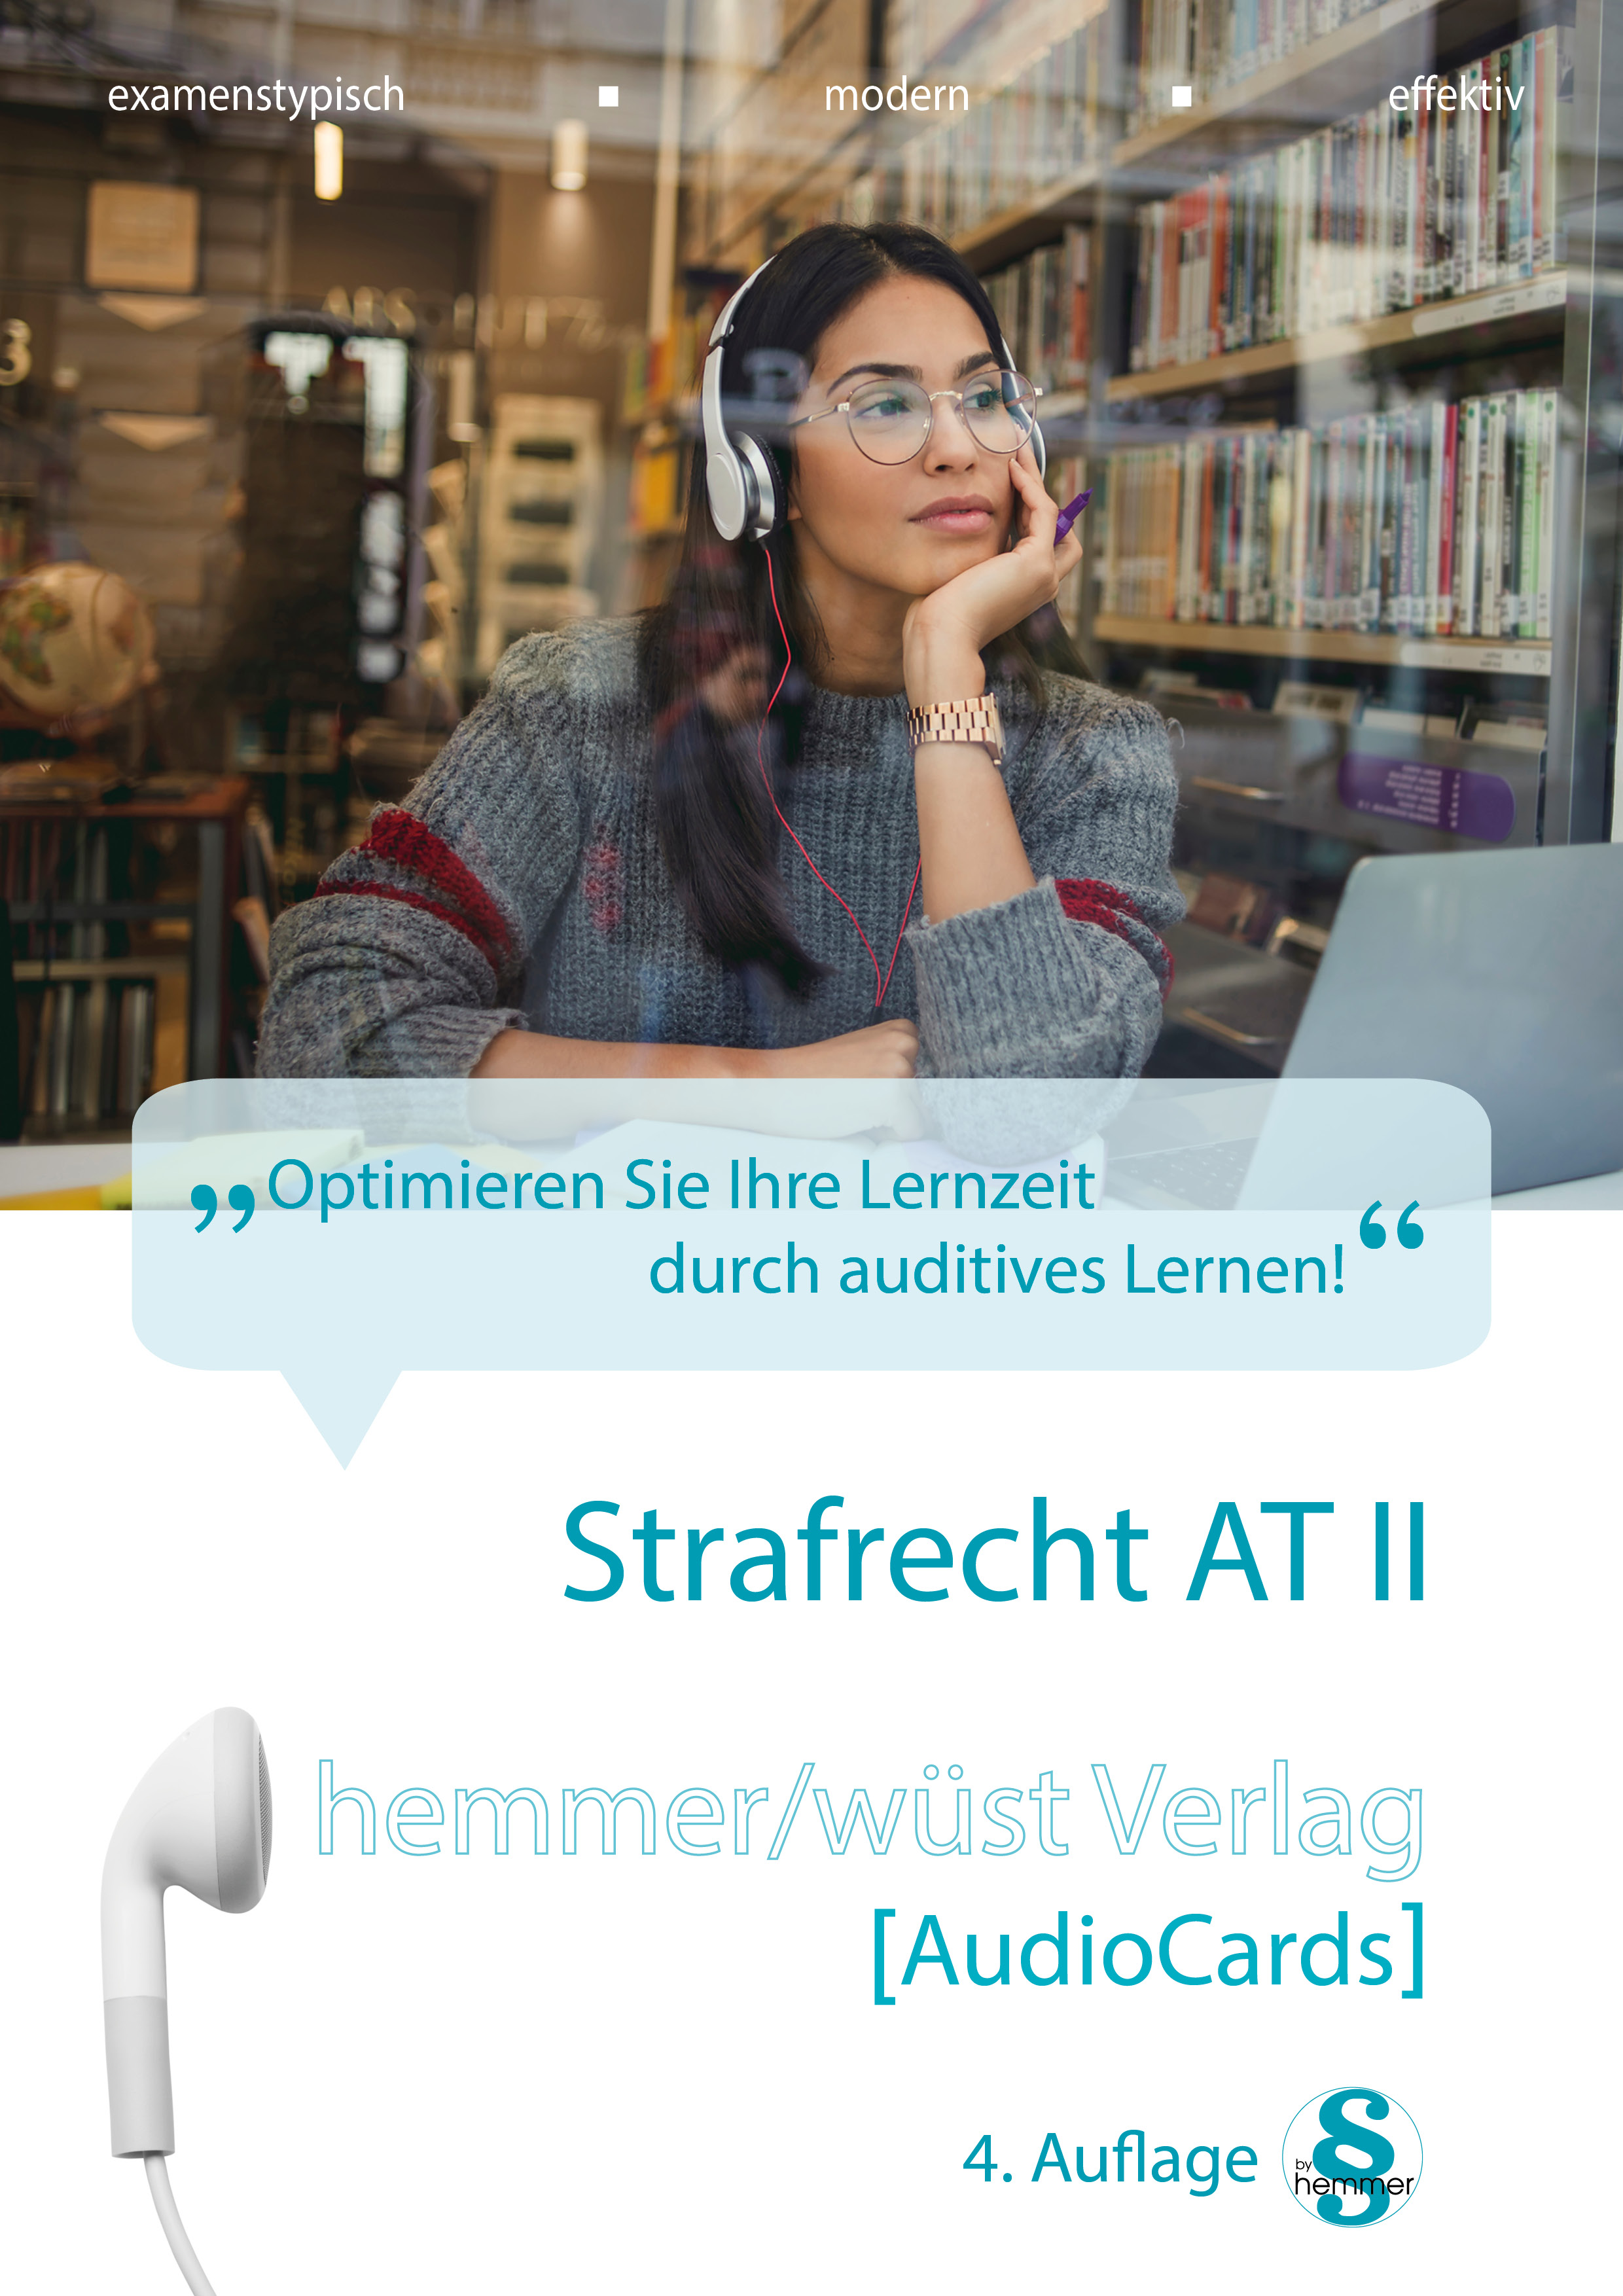 Audiocards - Strafrecht AT II - Download